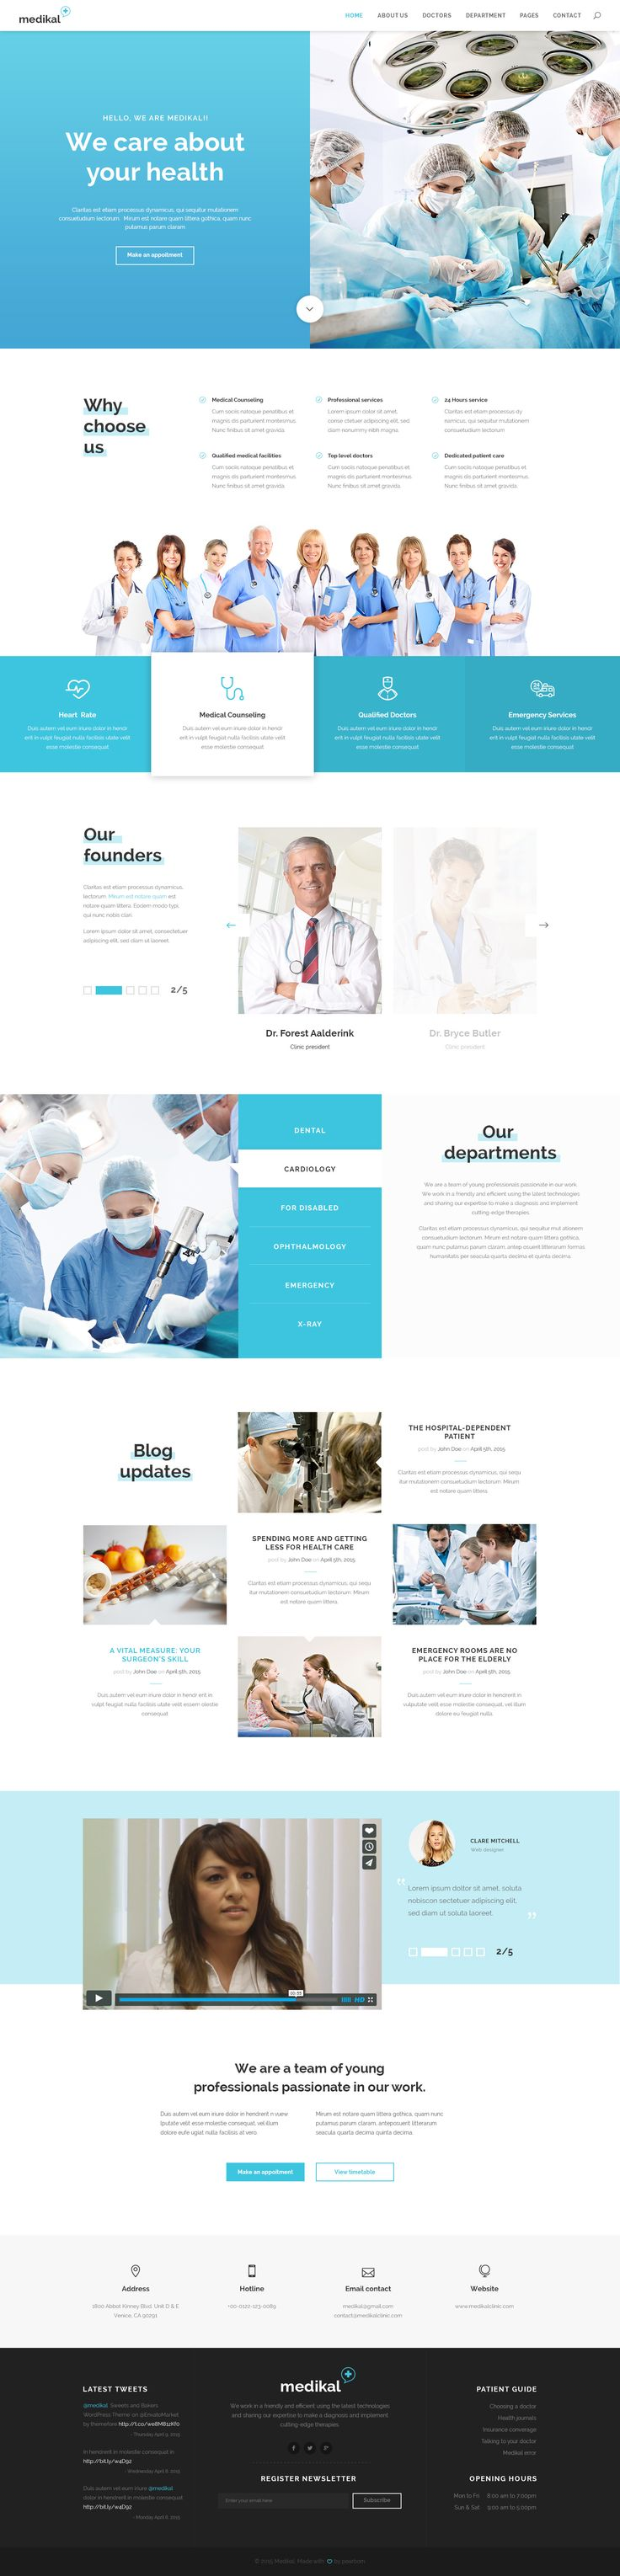 Medikal - Health Care & Medical PSD Template